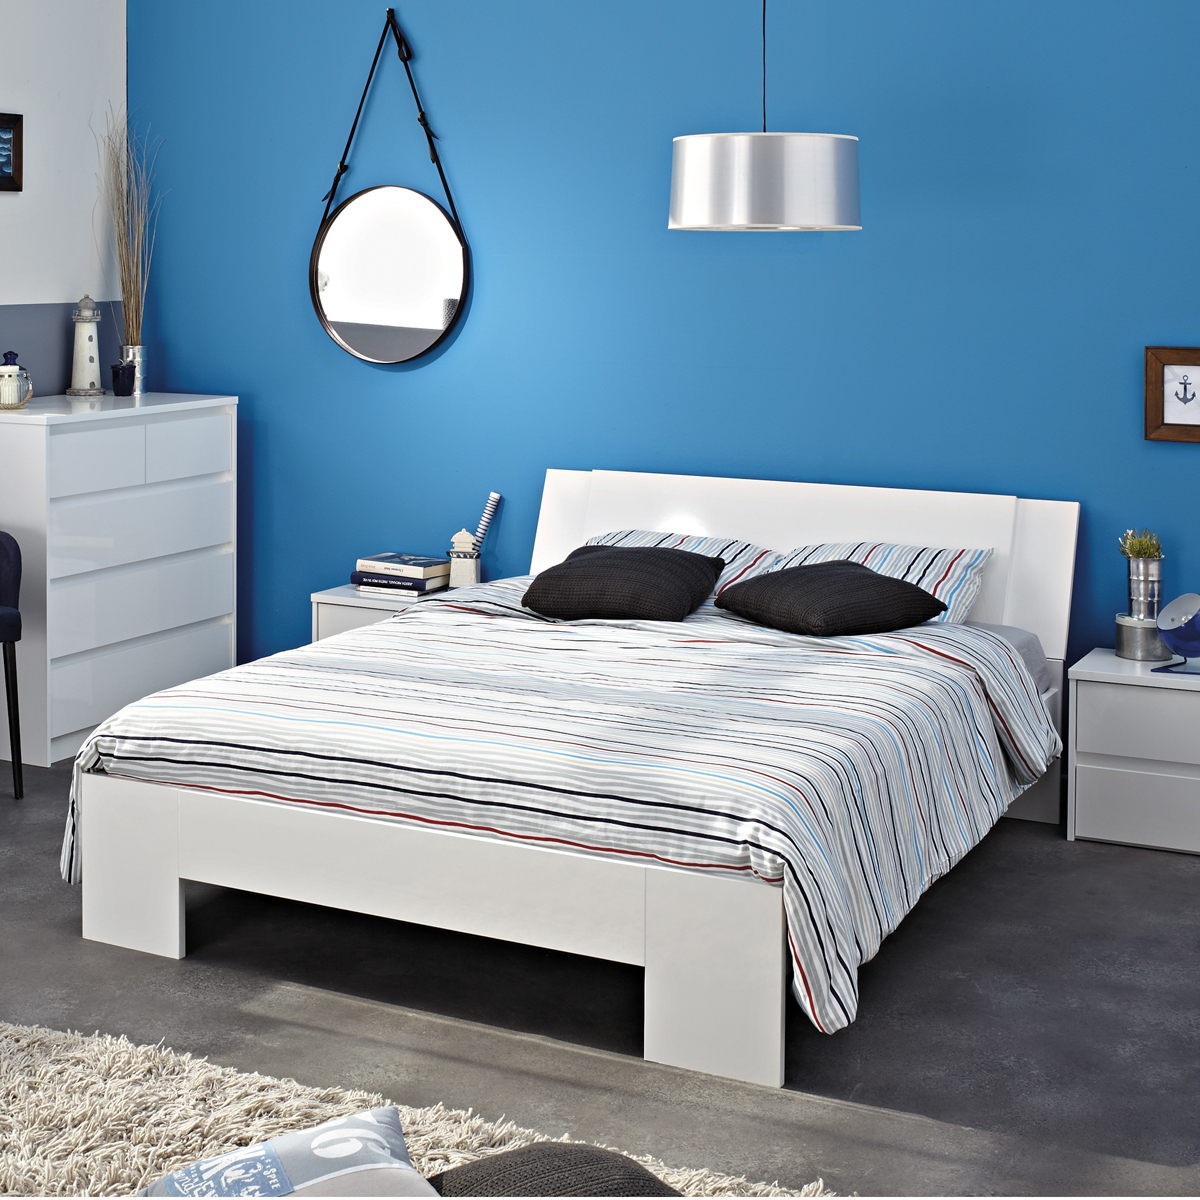 bett ontario 5 wei hochglanz 140x200 jugendbett. Black Bedroom Furniture Sets. Home Design Ideas